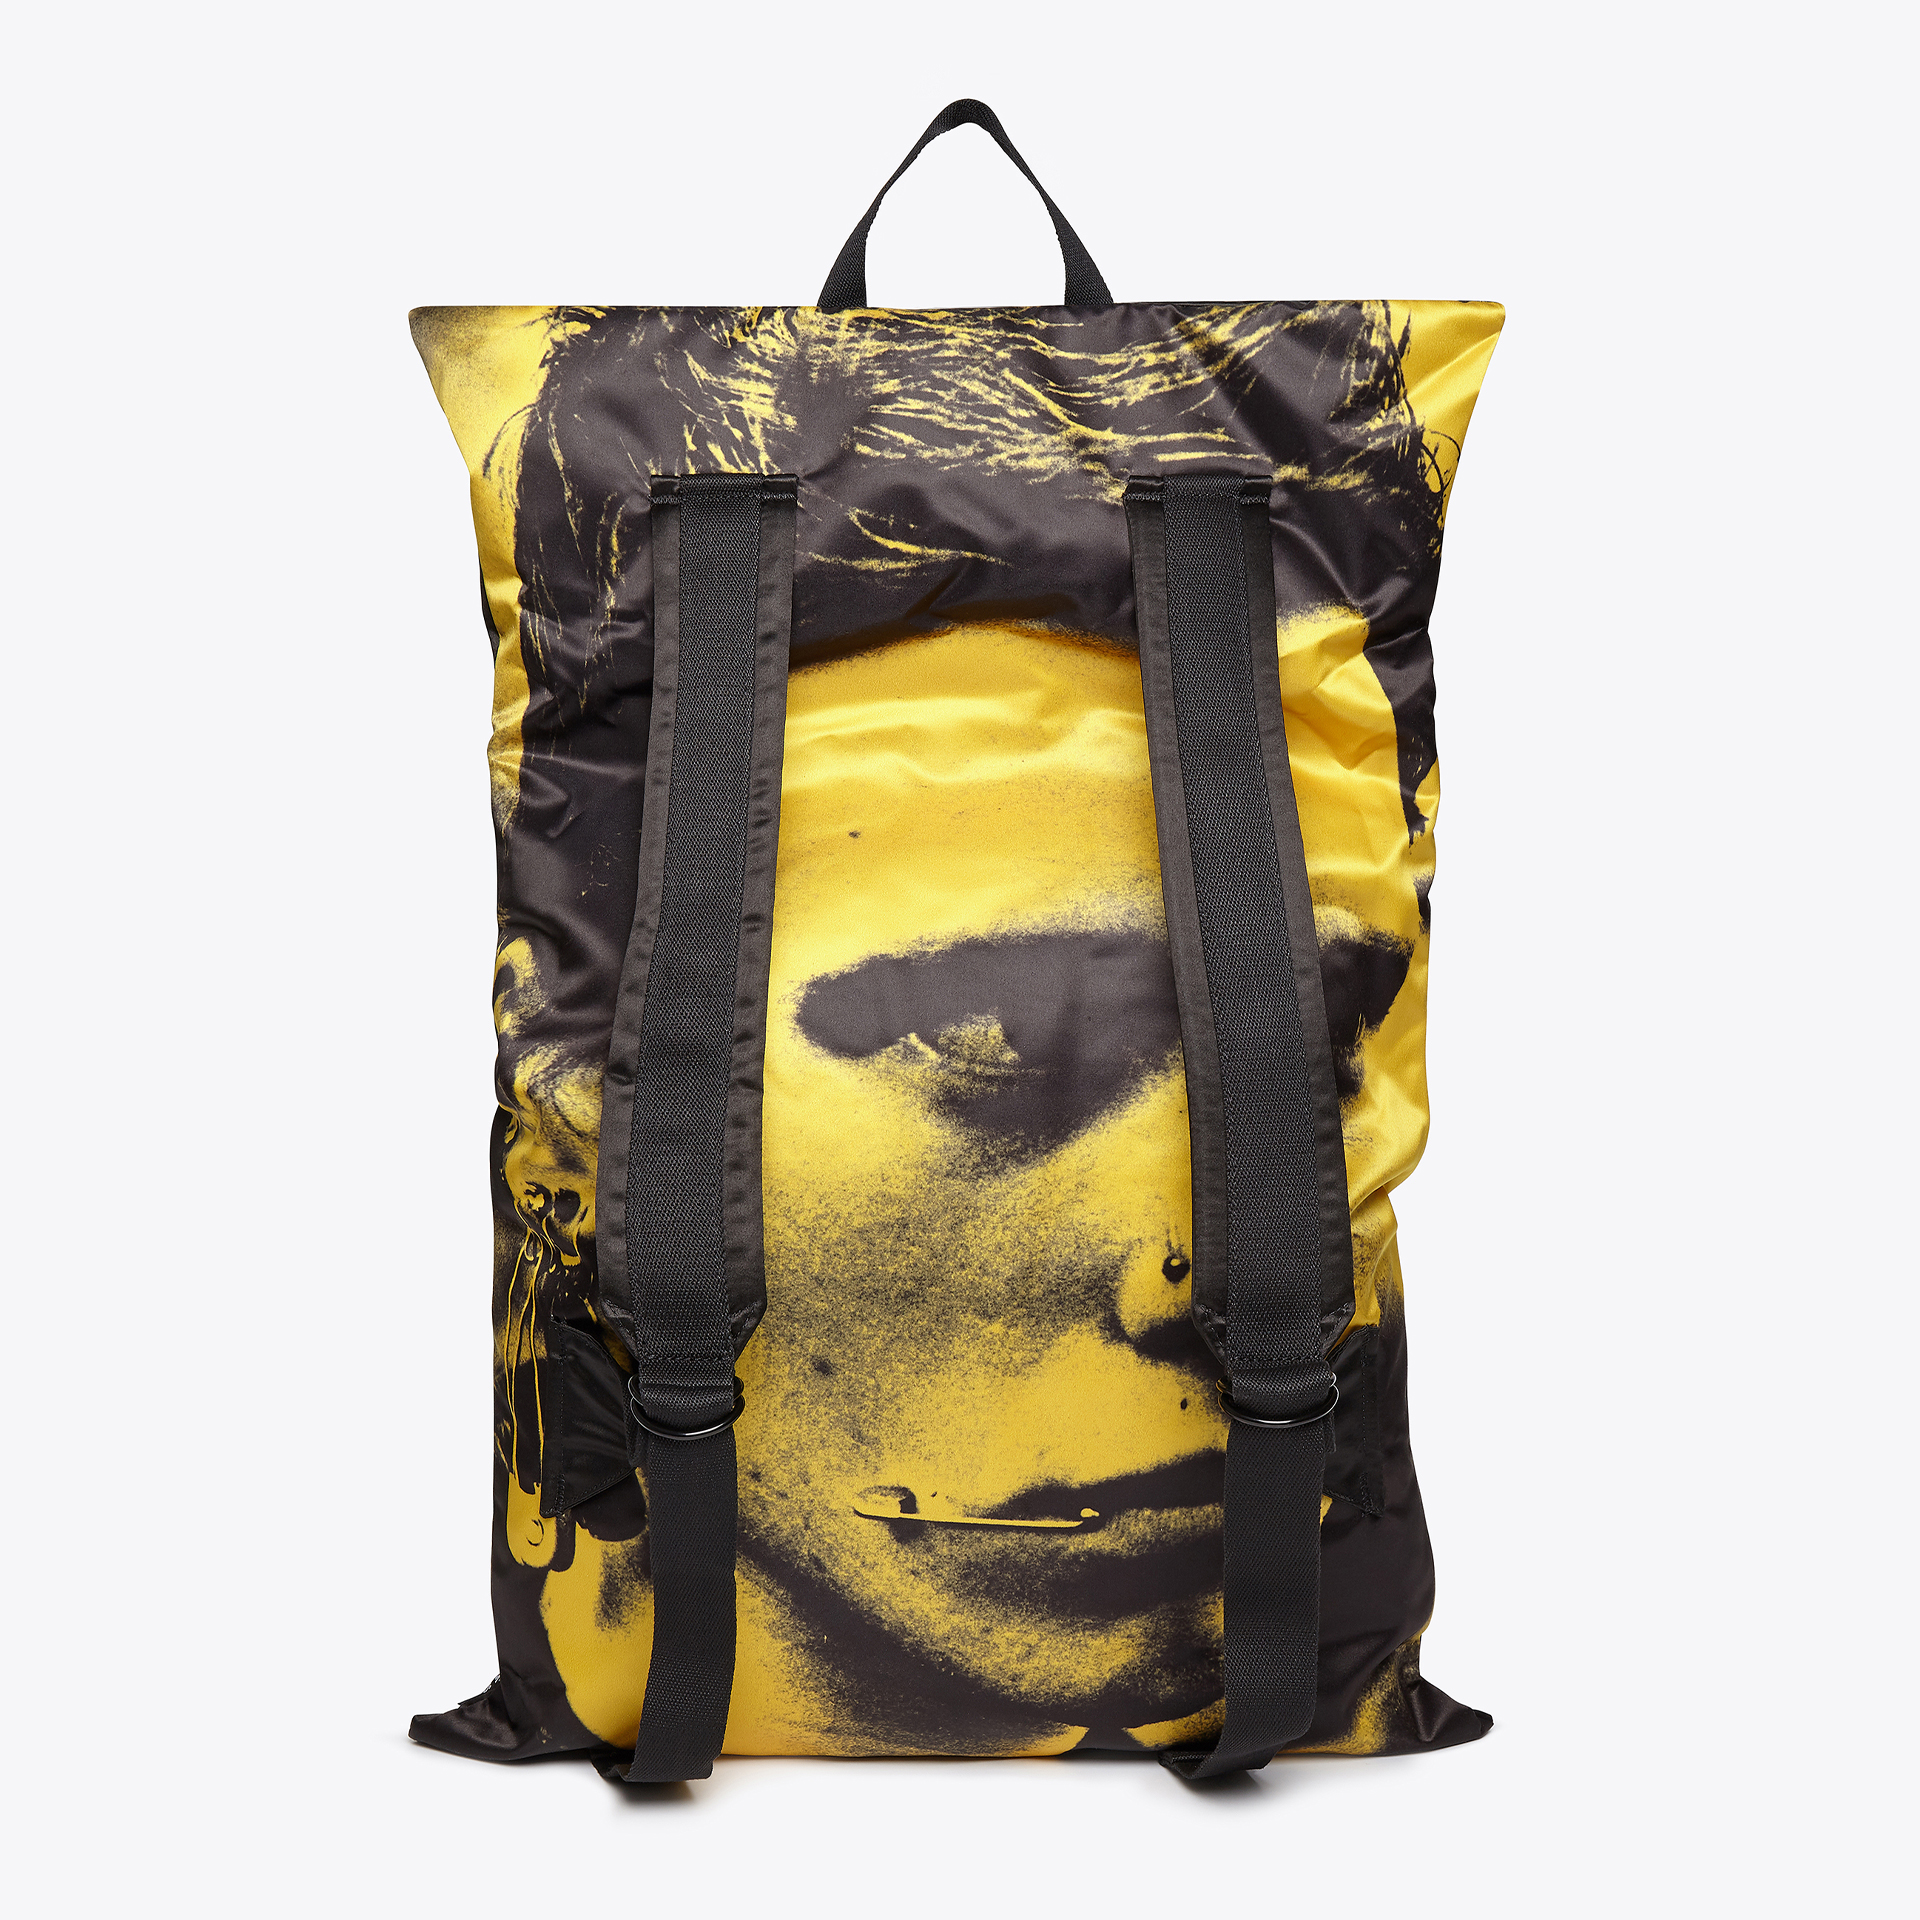 yellow backpack with an illustration of a persons face